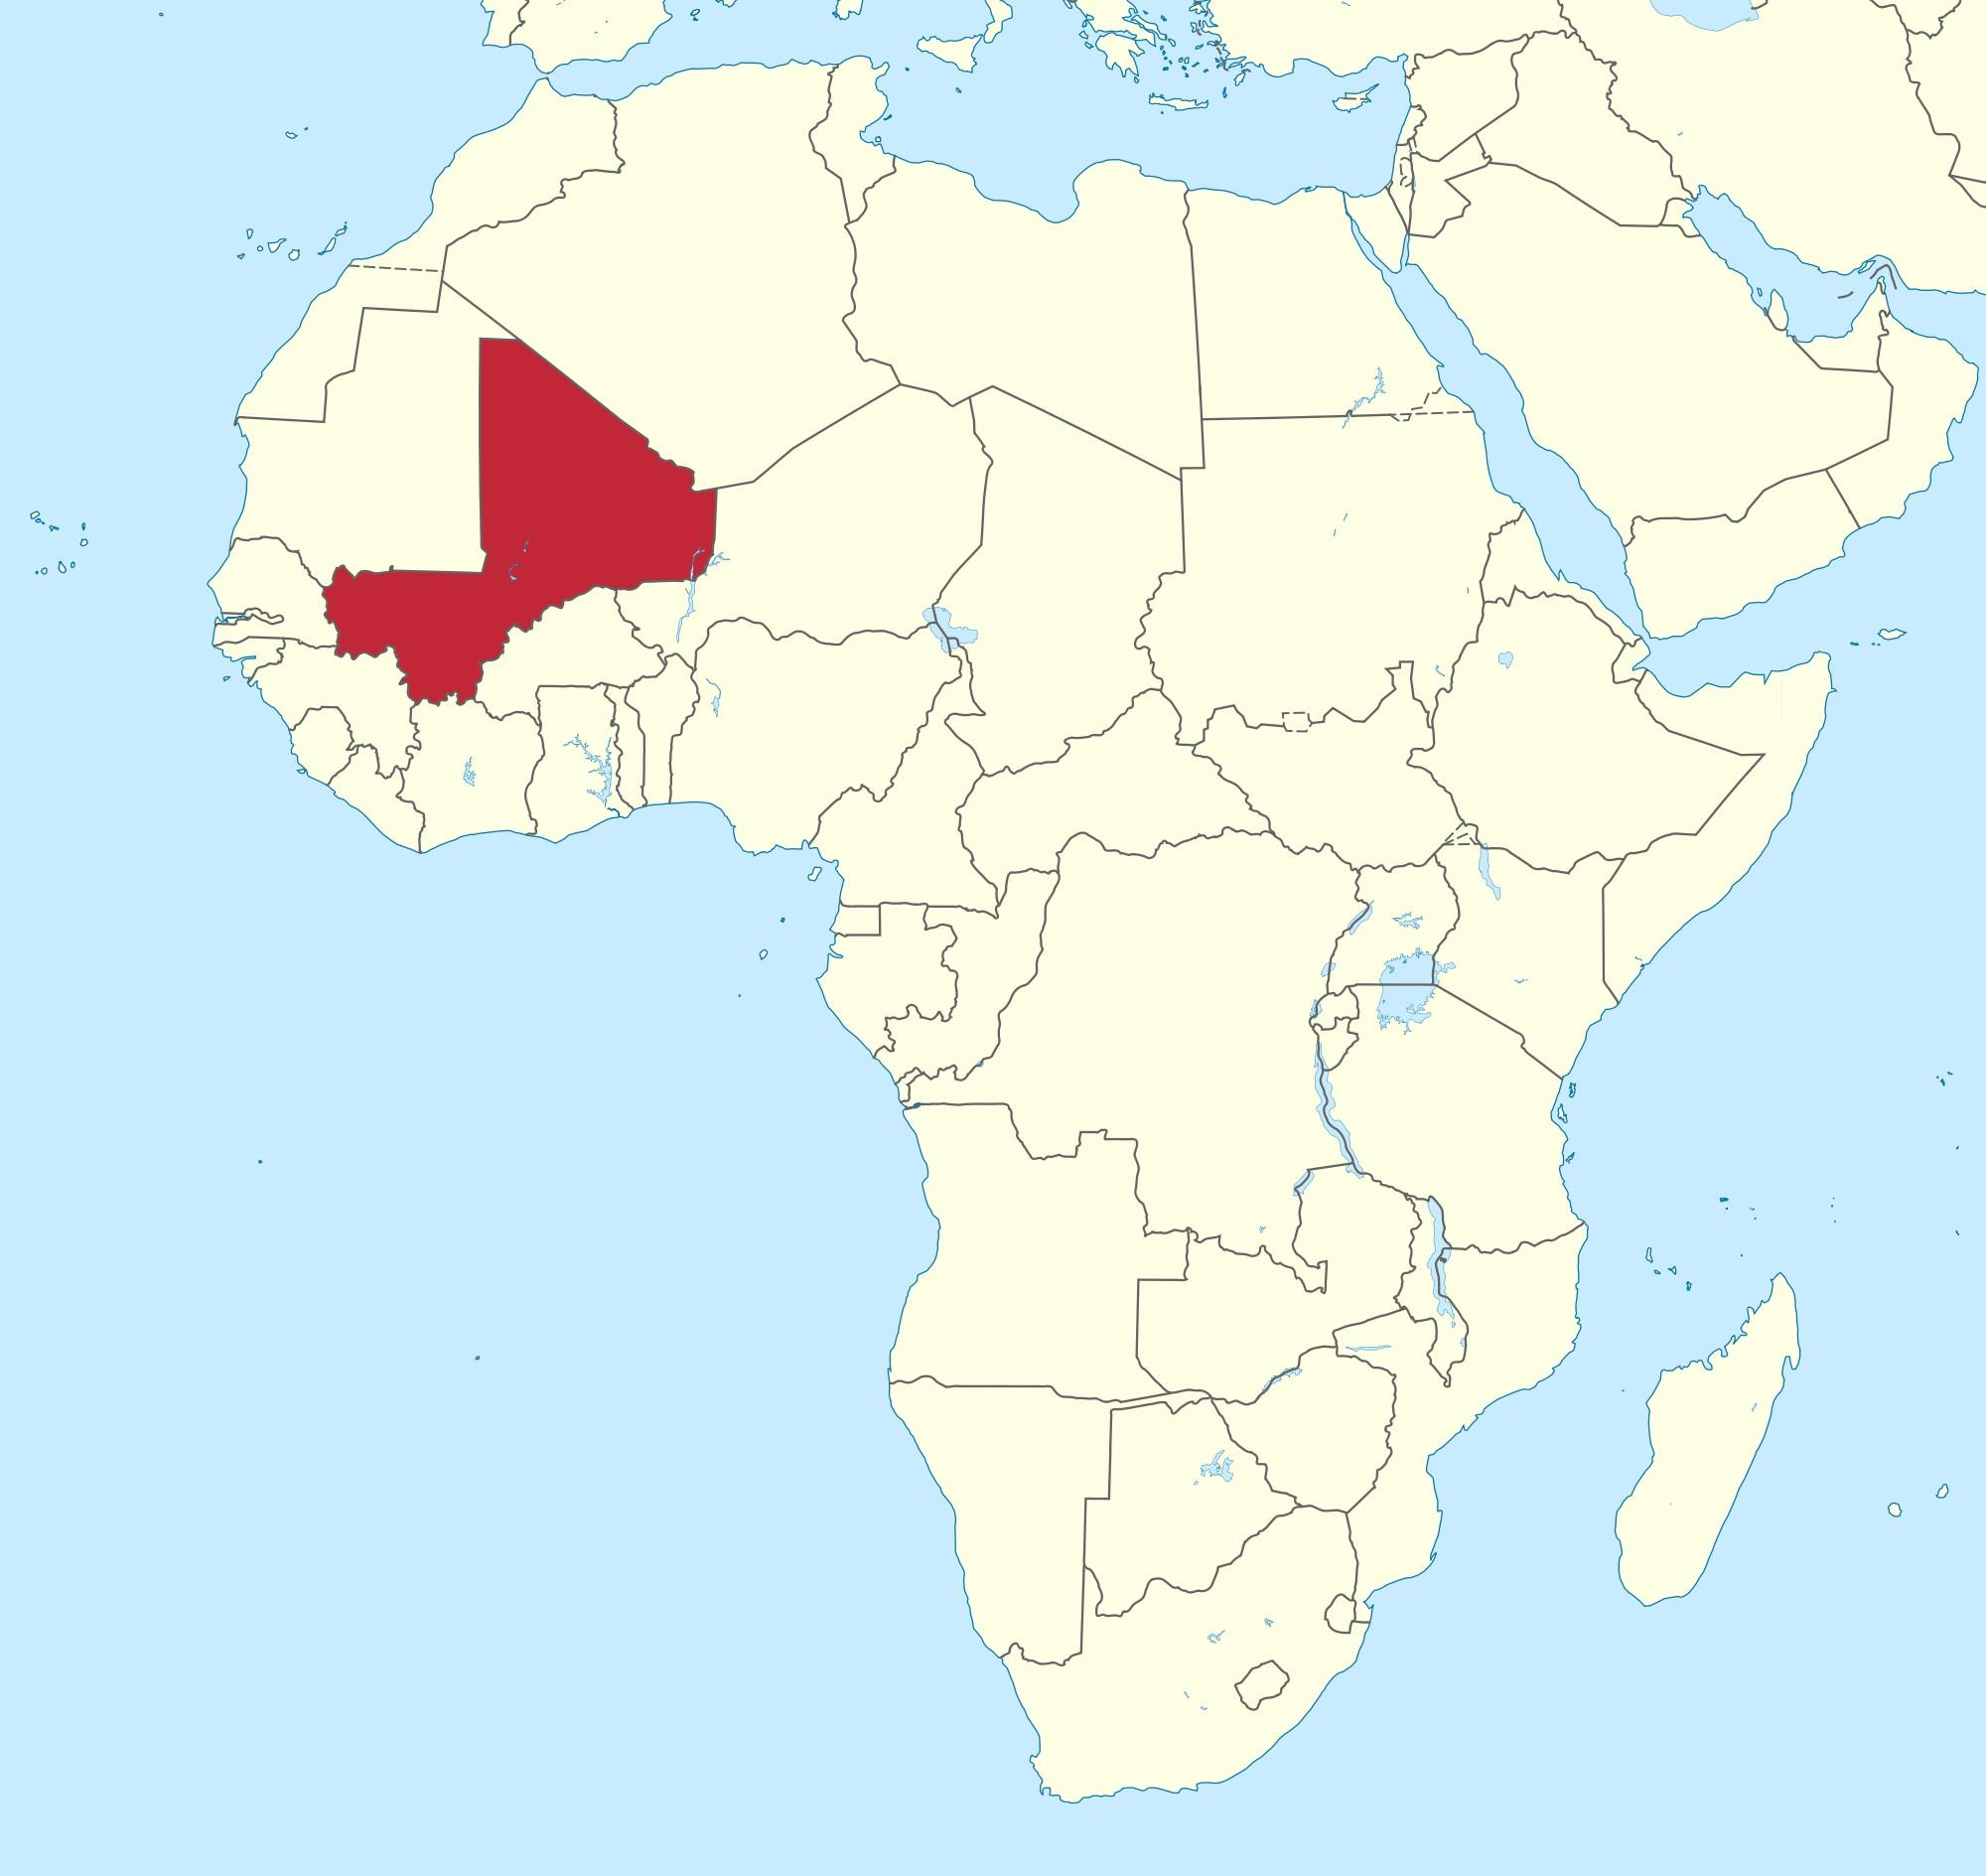 Mali Location On World Map Mali on world map   Mali location on world map (Western Africa  Mali Location On World Map